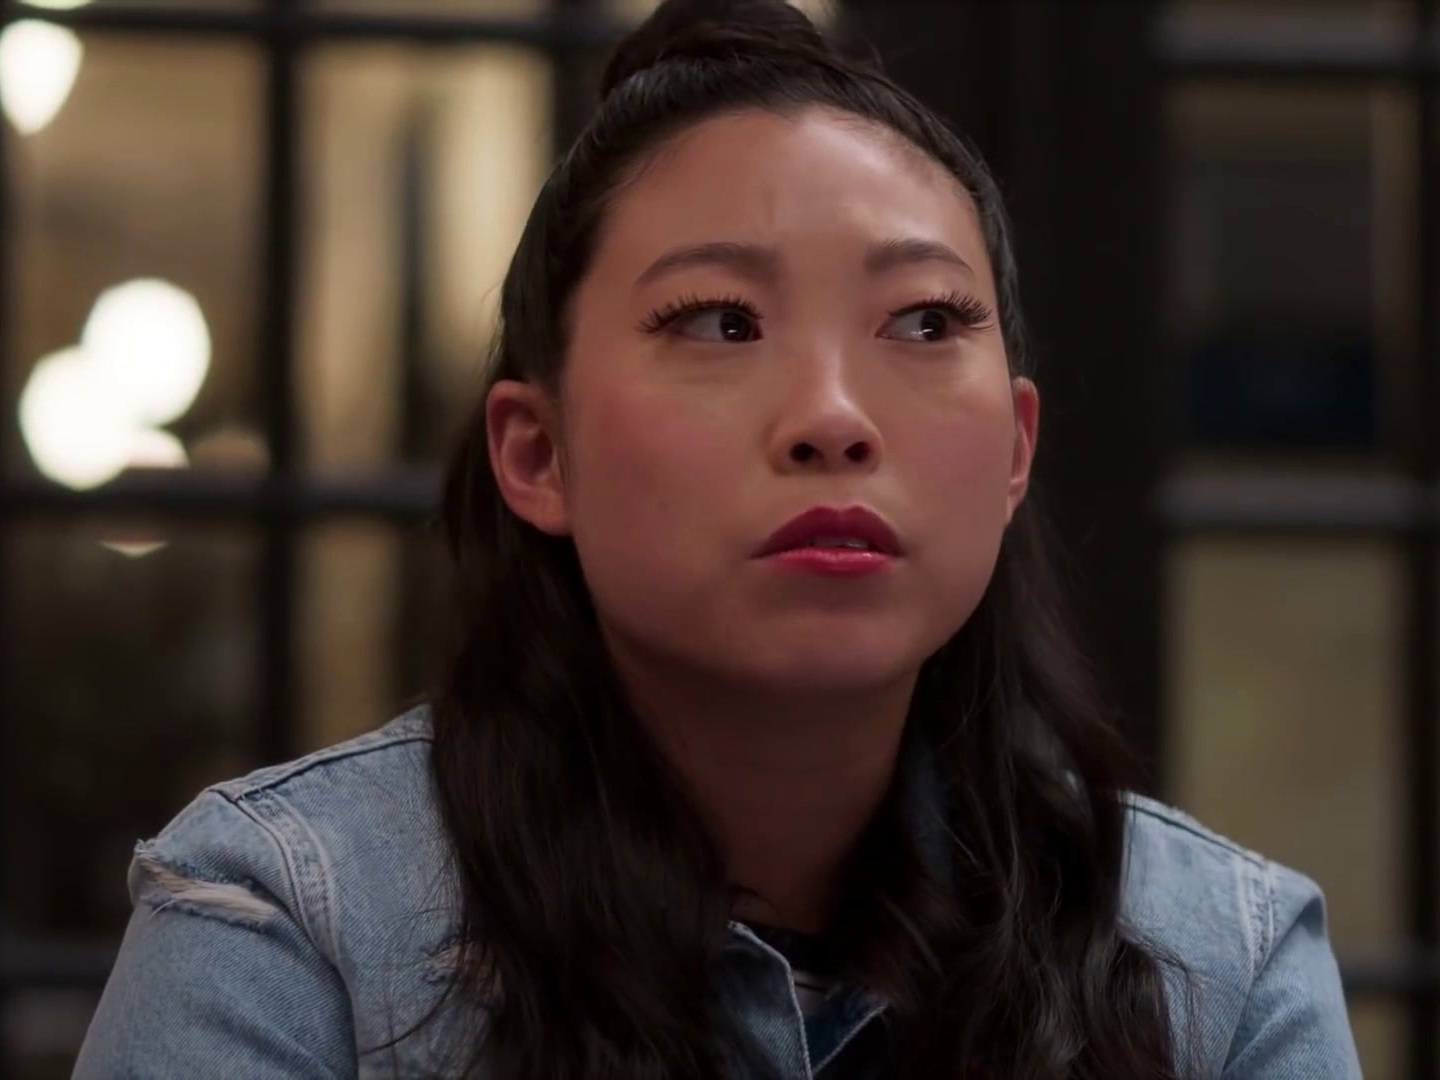 Awkwafina Is Nora from Queens: It's Weirdly Easy to Scam Focus Groups